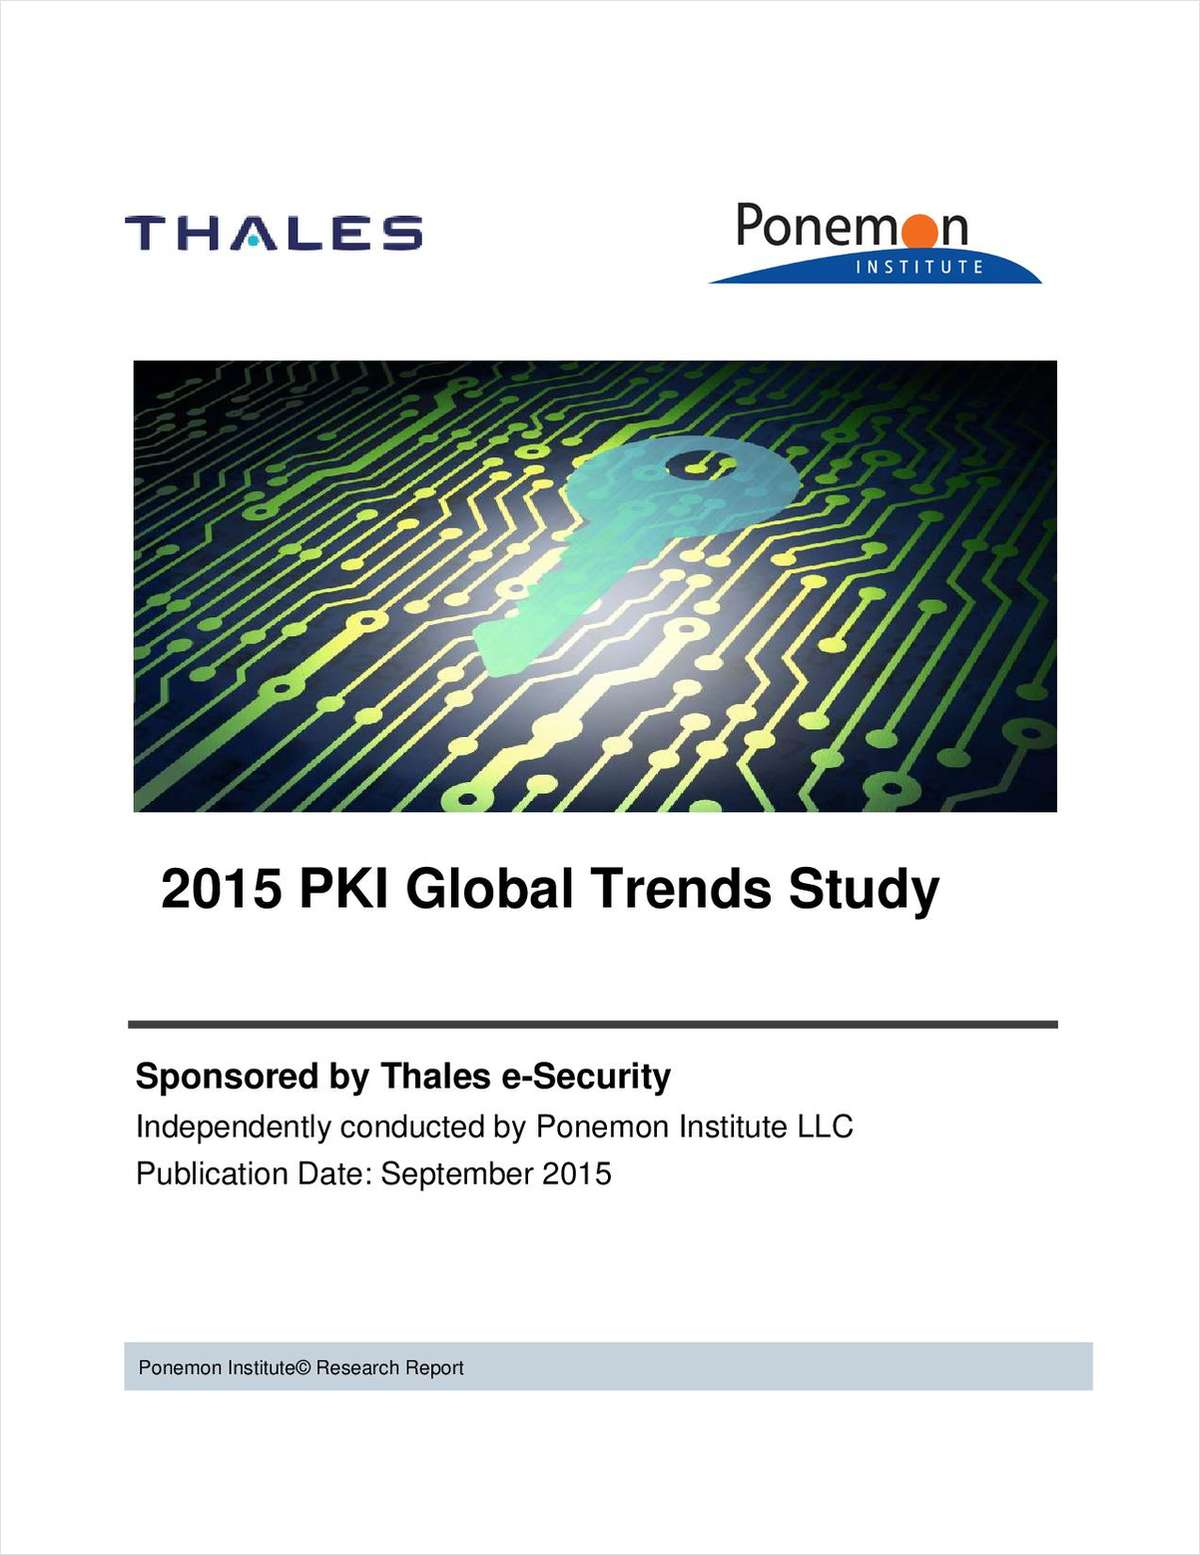 PKI Global Trends Study